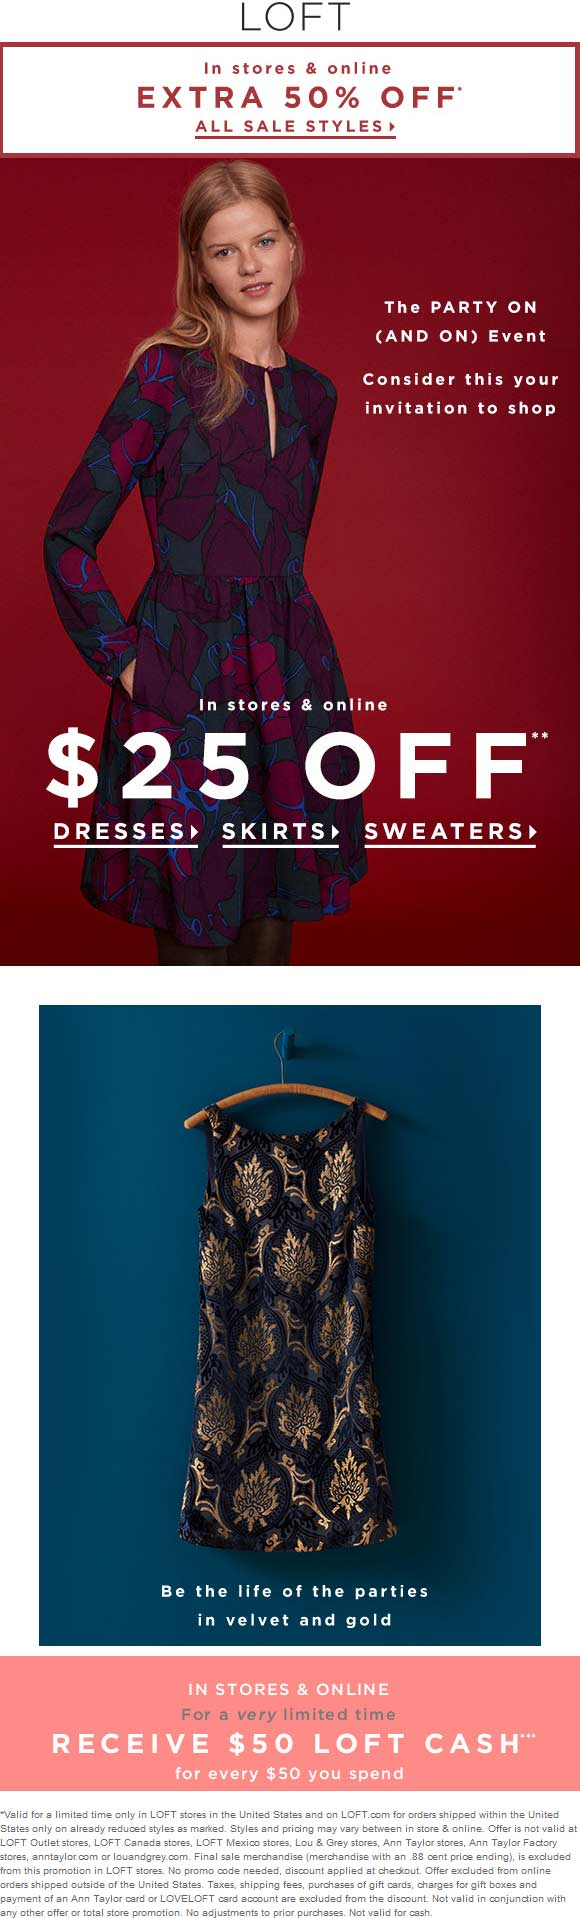 LOFT.com Promo Coupon Extra 50% off sale items at LOFT, ditto online - also $50 store cash on every $50 spent